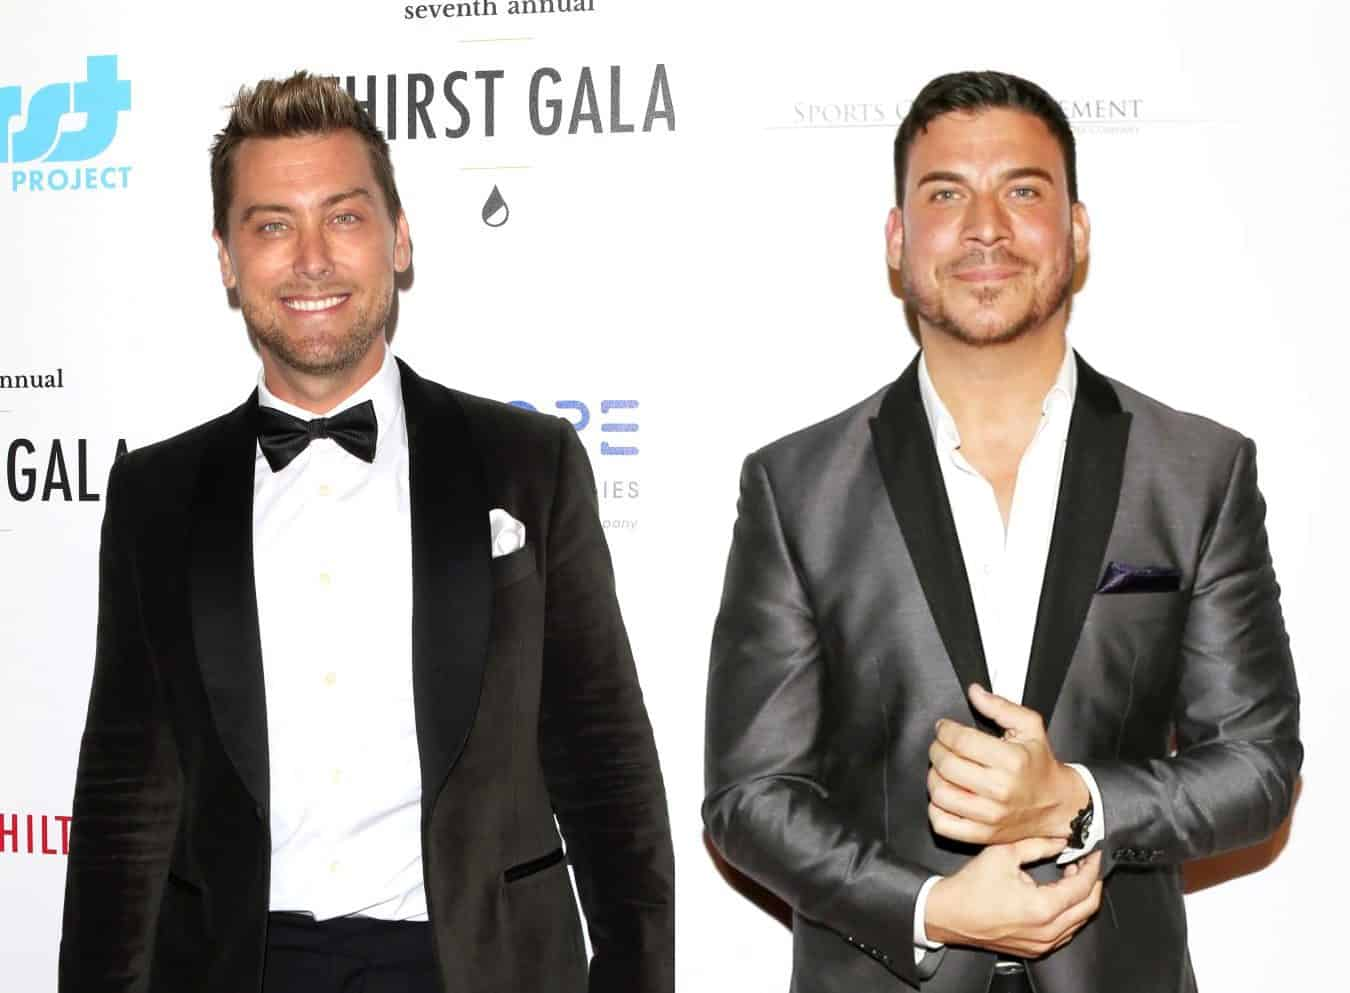 Lance Bass Suggests Jax Taylor Will Be Fired From Vanderpump Rules, Ends Business Relationship With Him and Says He Doesn't Understand Racism as Jax Responds